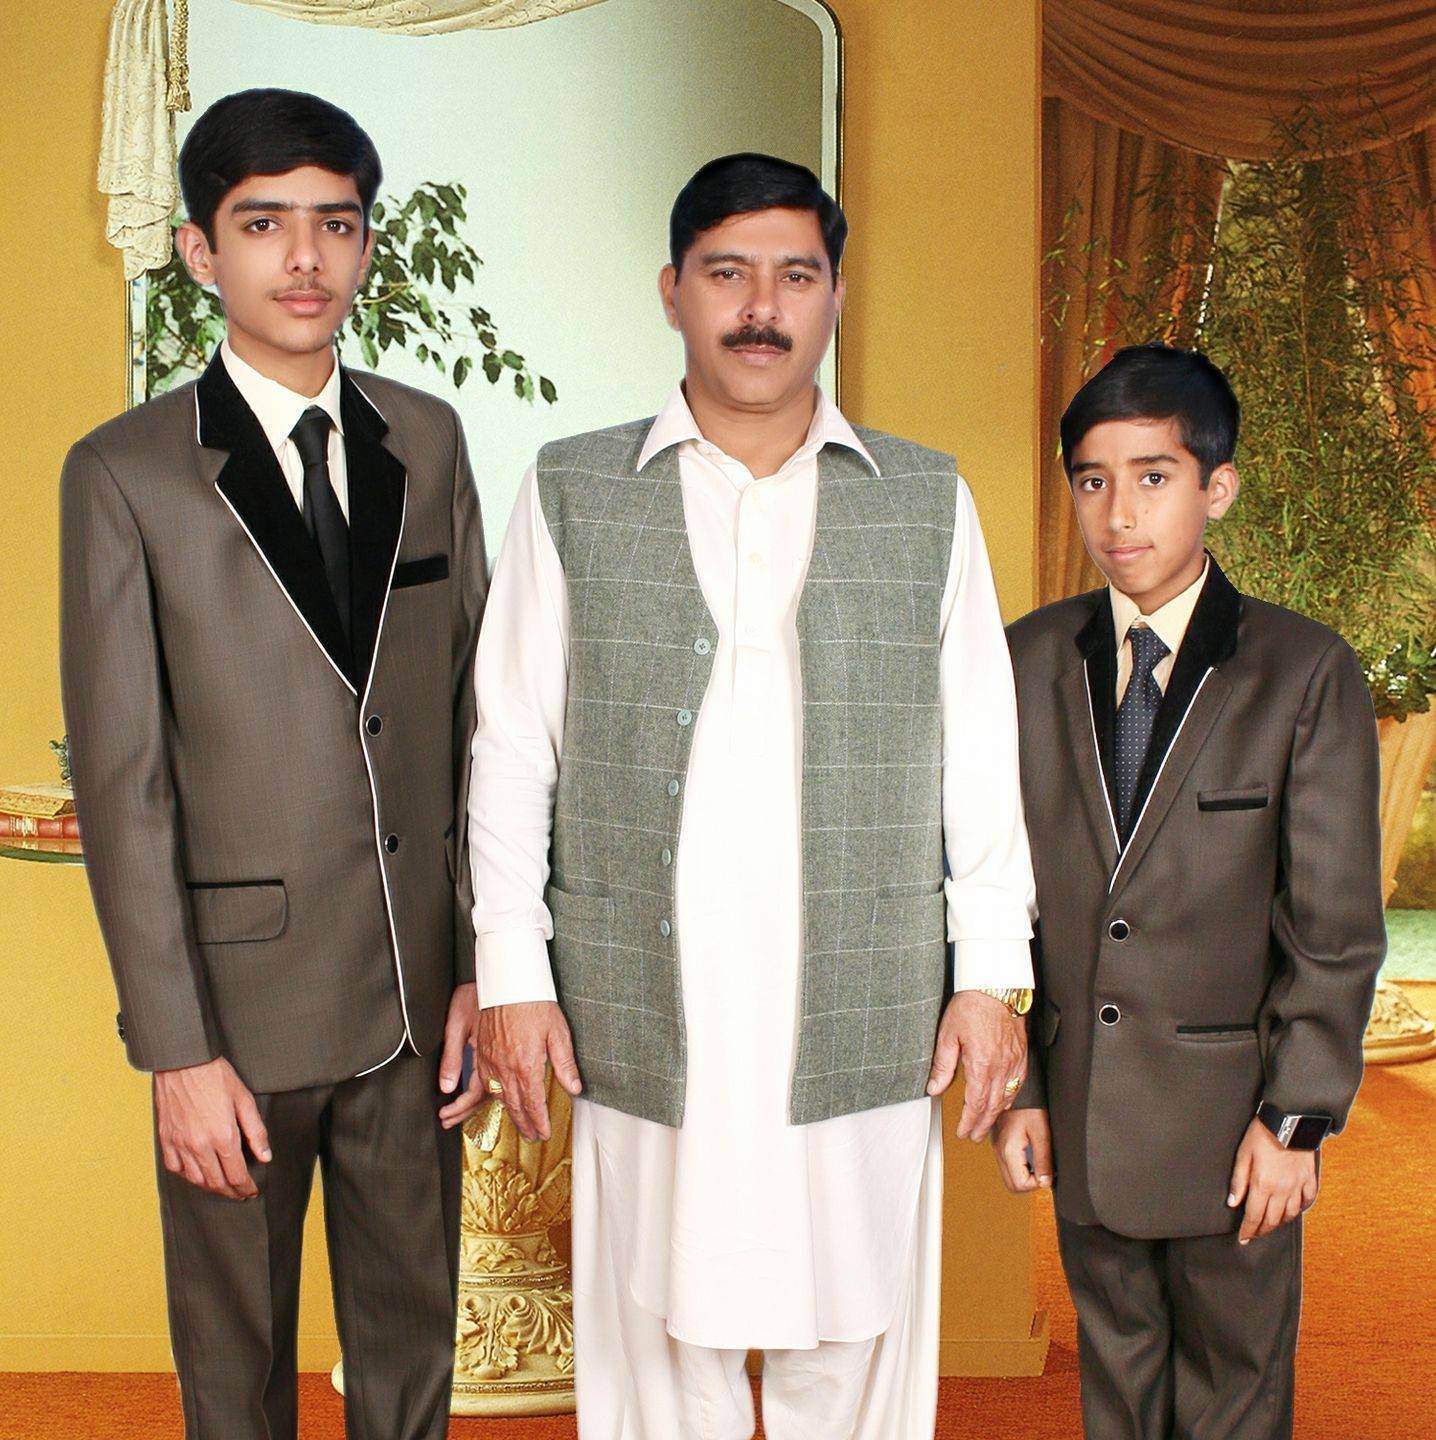 sahiwal board topper Ahsan Hanif choudhry with his brother and father